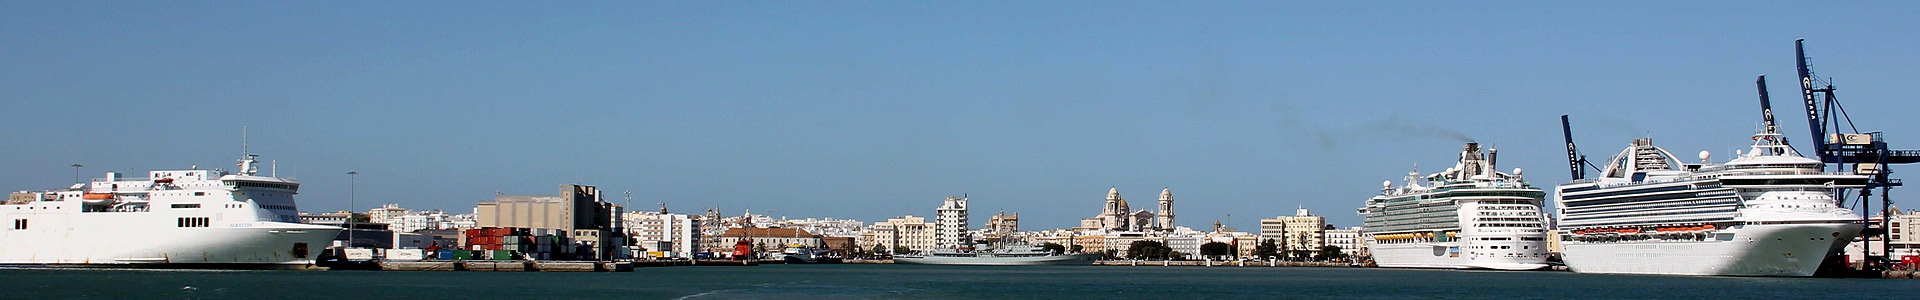 port_cadiz.jpg